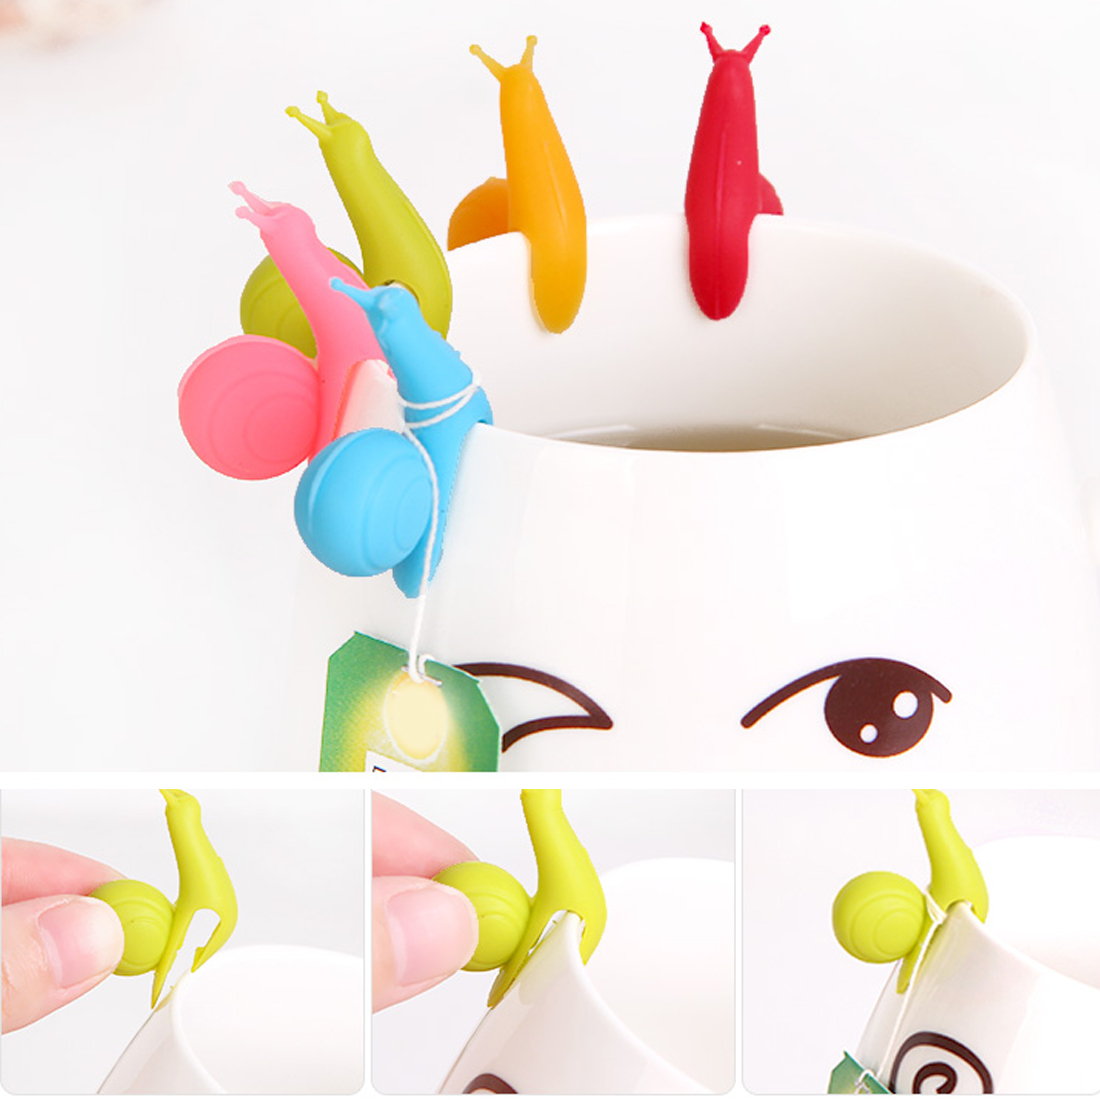 Silicone Tea Bag Holder 5 Pcs/Set Cute Snail Shape Tea Bag Clip Cup Mug Tea Infusers Strainer Clips Party Decor Random Color